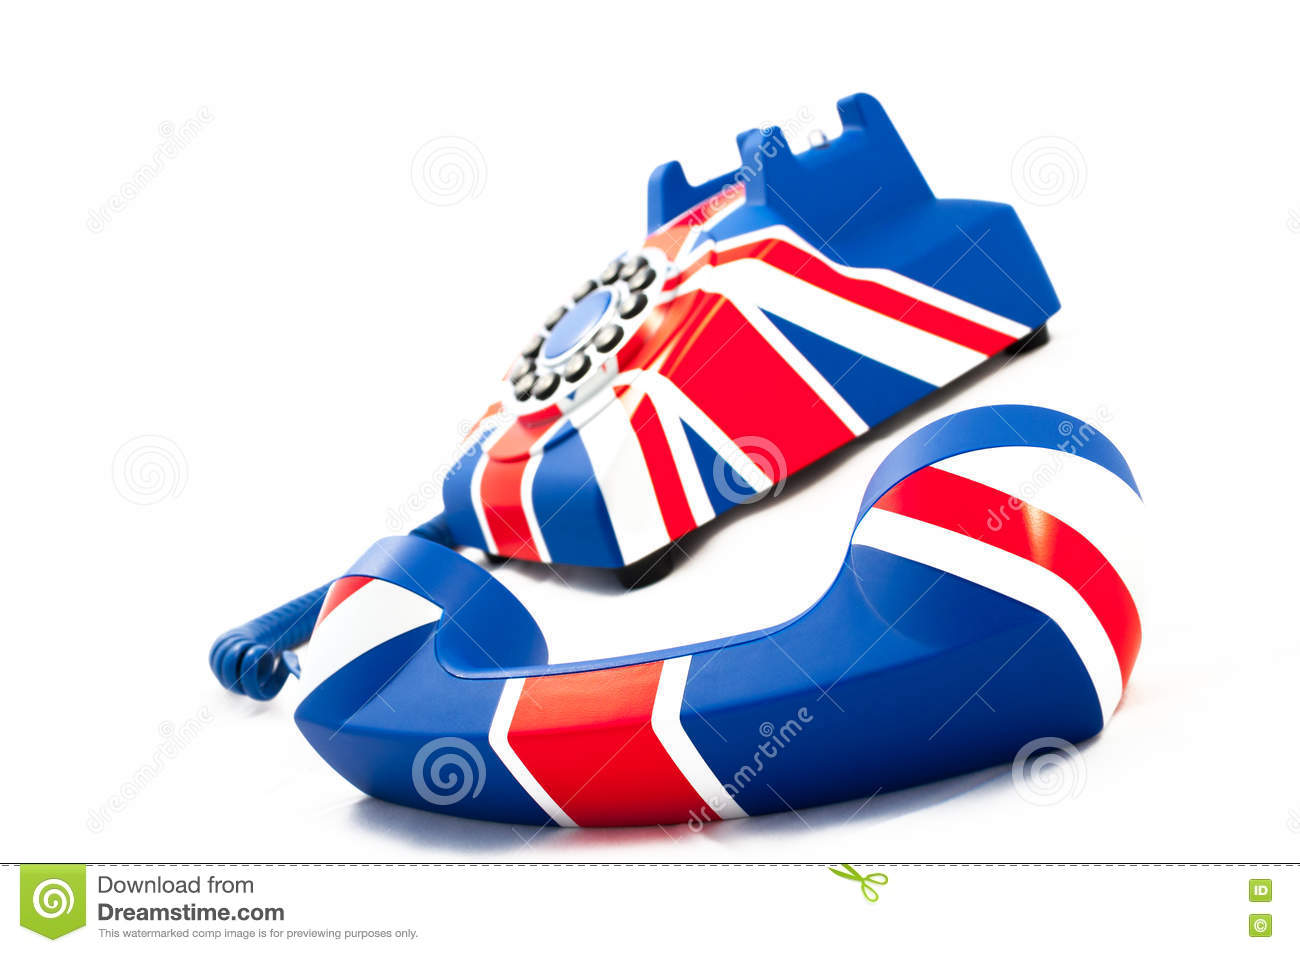 Union Jack telephone with the receiver off the hook laying in front of the phone isolated on the white background.